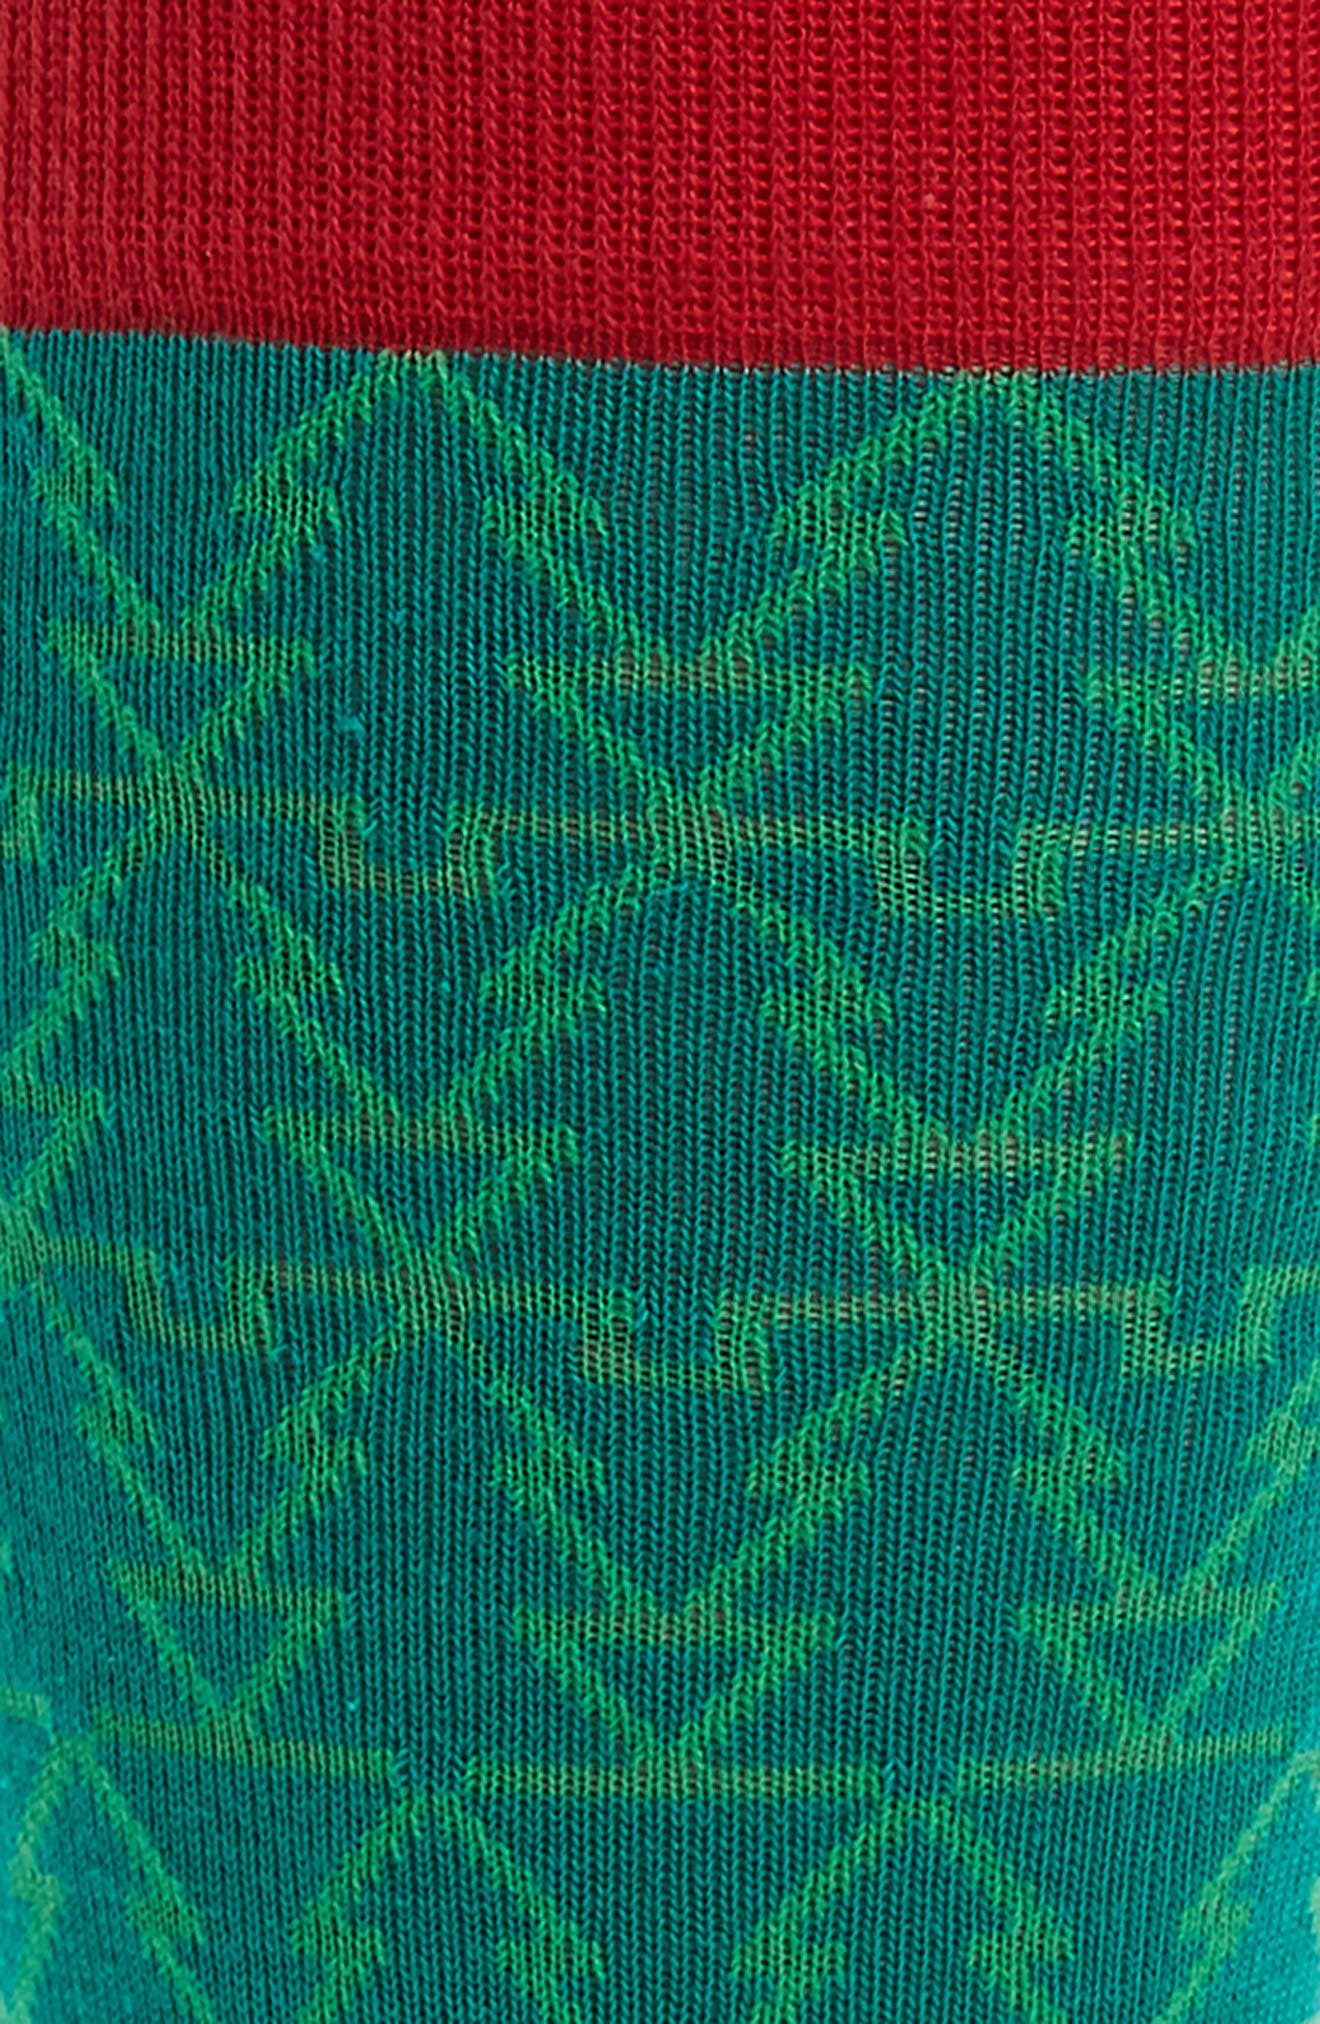 Holiday Mosaic Tree Socks,                             Alternate thumbnail 2, color,                             Green Pepper